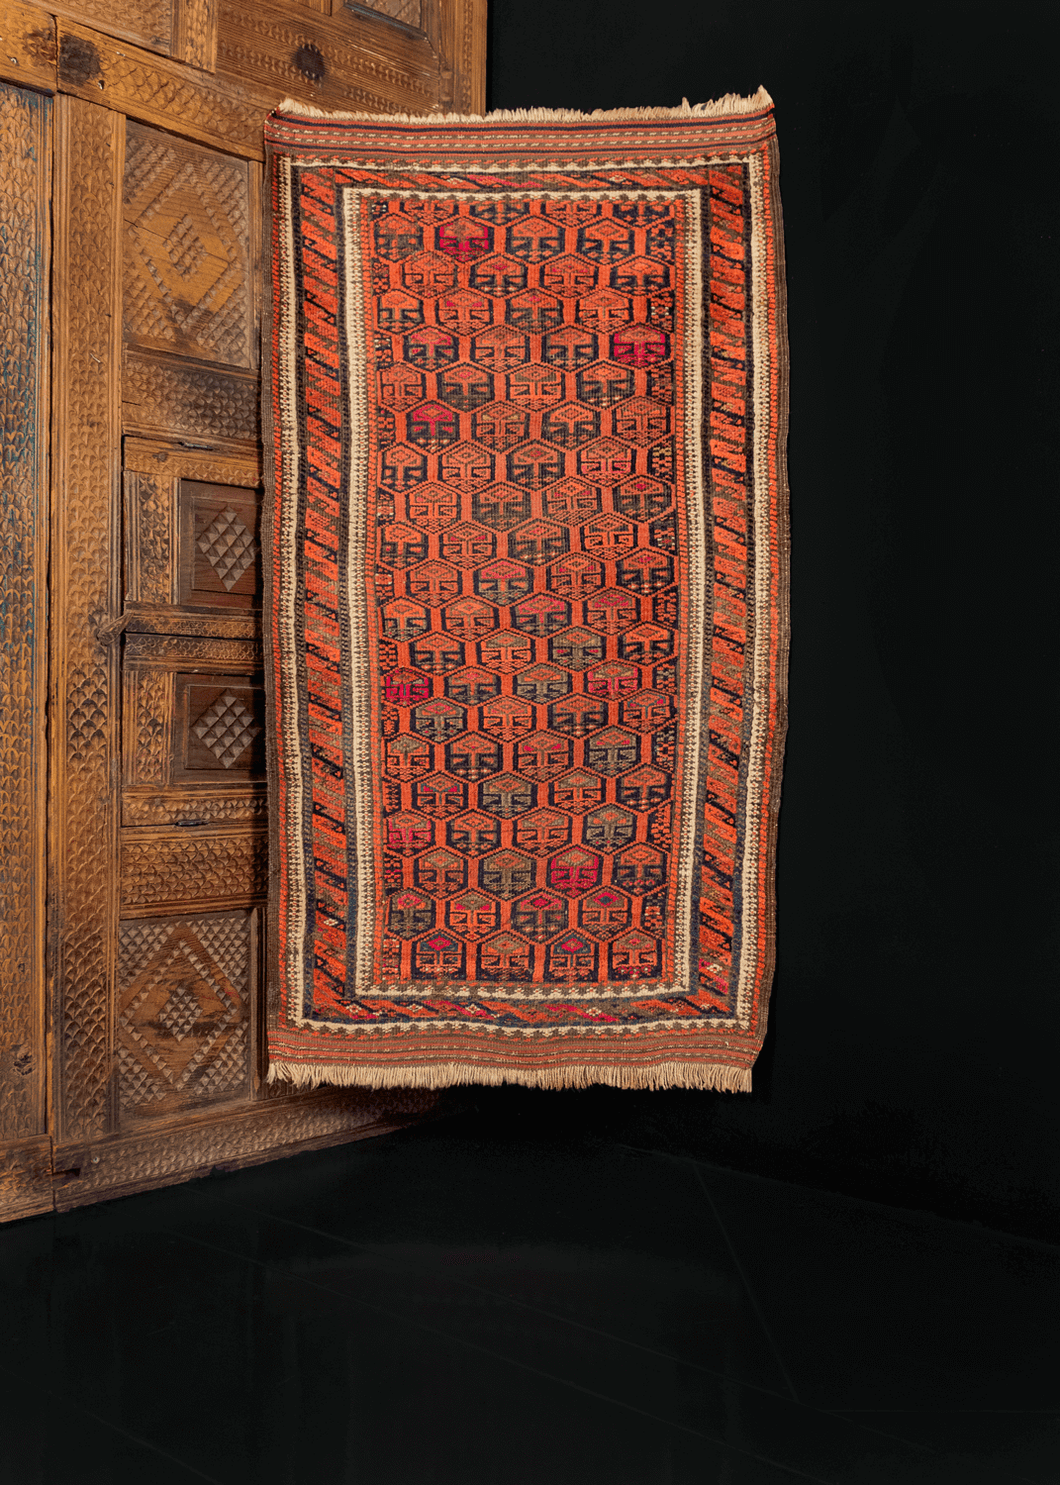 Baluch rug from the second quarter of 20th century with diagonal repeat design in reds, oranges, and browns with pops of fuchsia